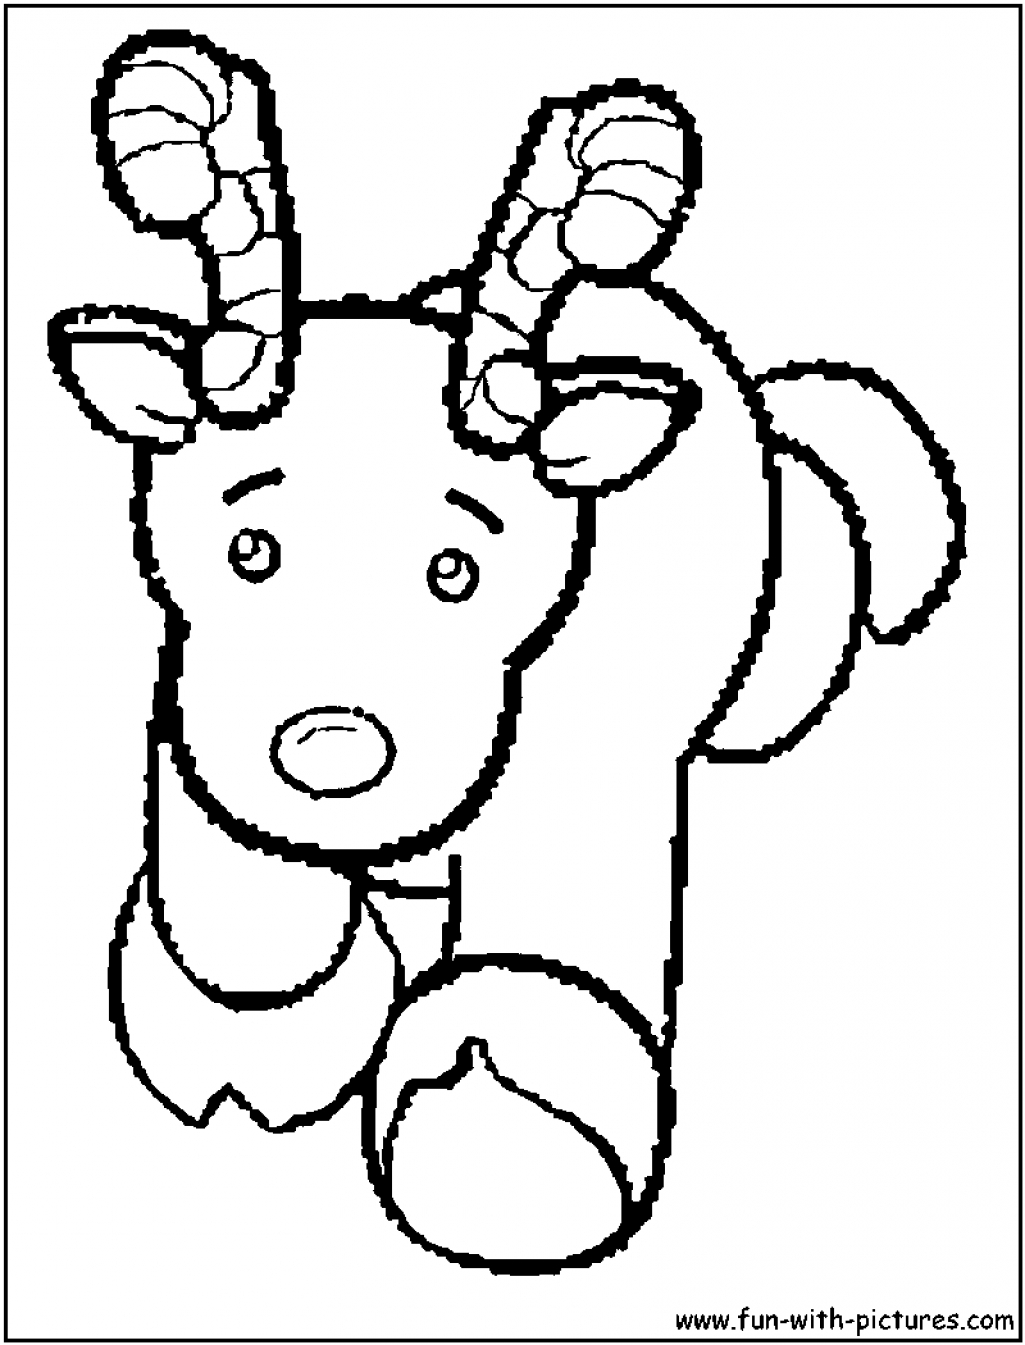 Webkinz coloring pages to download